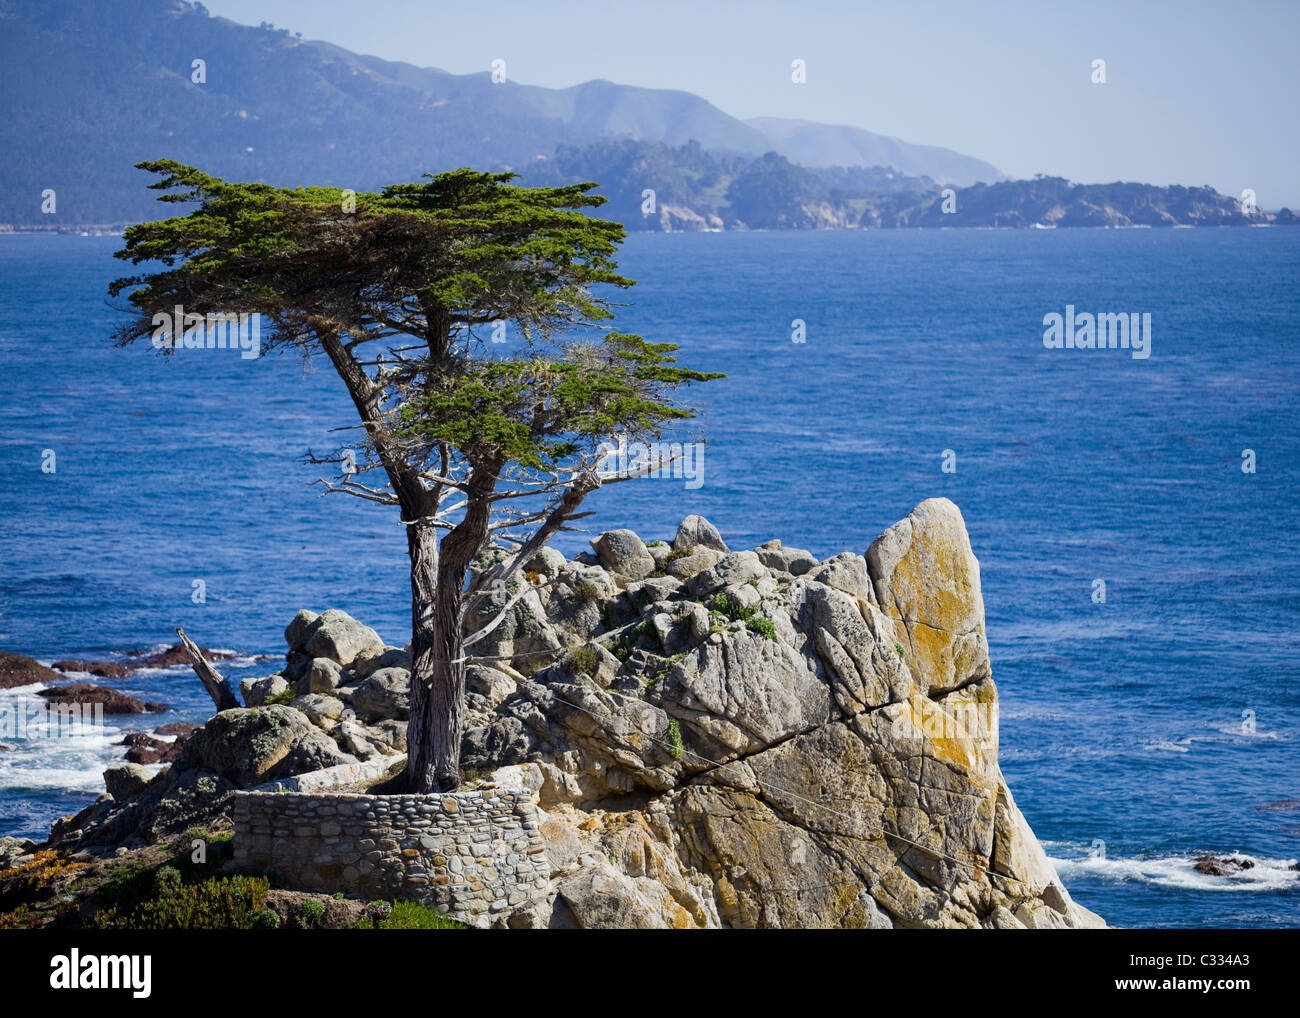 Lone Cypress tree in Monterey, California, USA - Stock Image